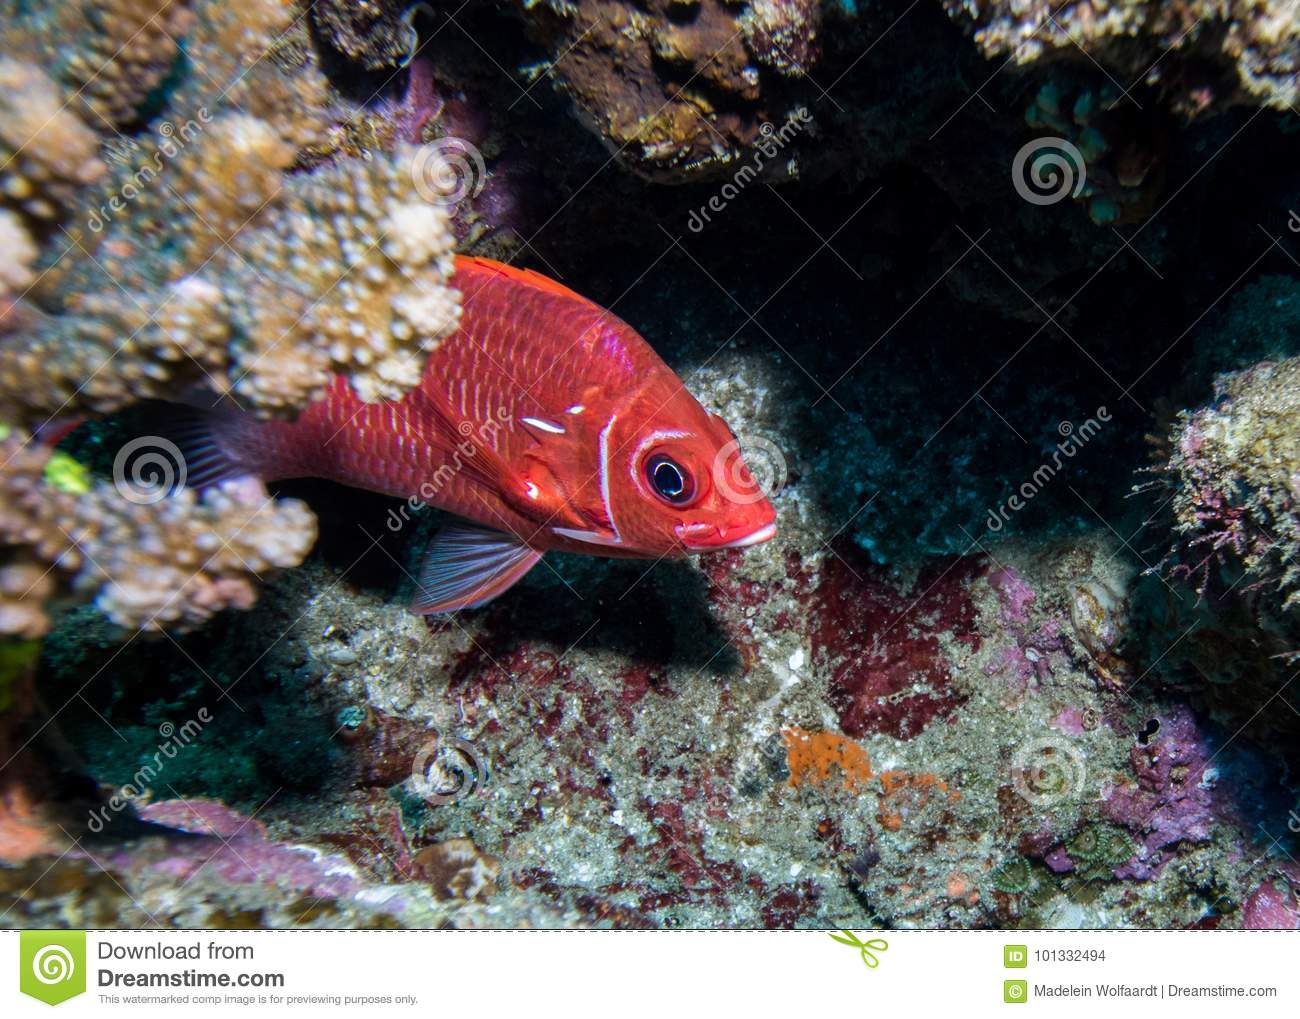 Tailspot Squirrelfish Hiding Behind A Rock. Stock Photo - Image of ...